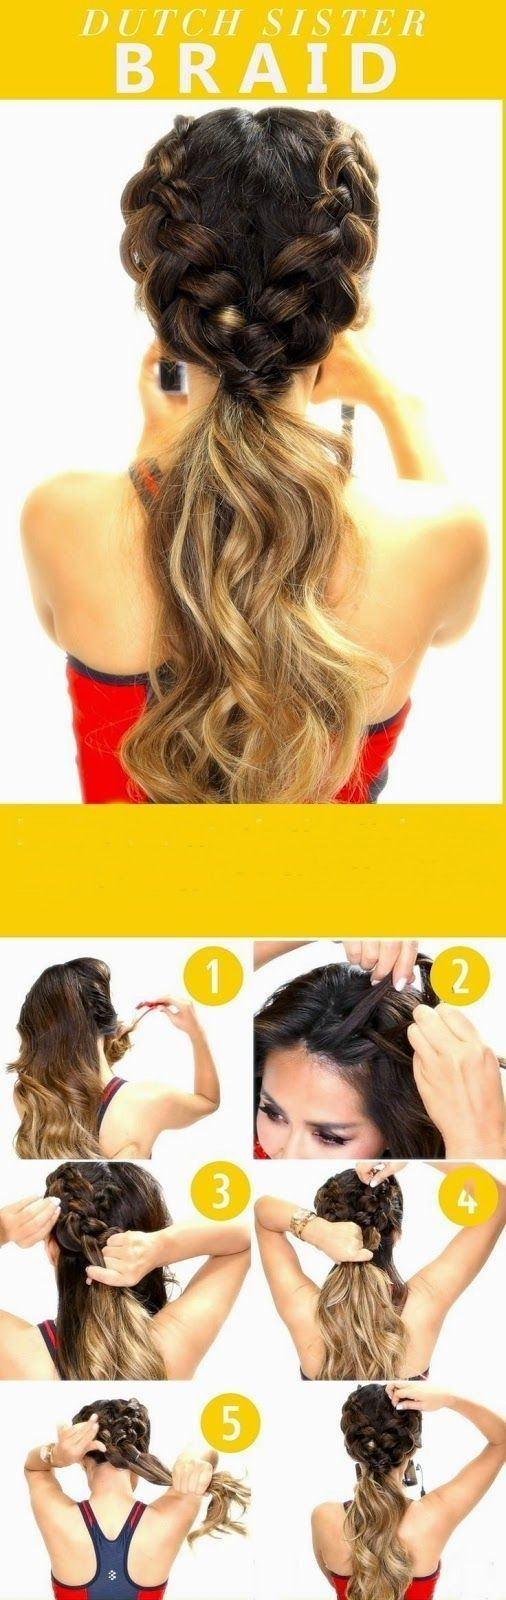 cool 10 Super-easy Trendy hairstyles for school. Quick, Easy, Cute  and Simple Step By Step Girls and Teens Hairstyles for Back to School.  Great For Medium Hair, Short, Curly, Messy or Formal Looks.  Great For the Lazy Girl Too!!